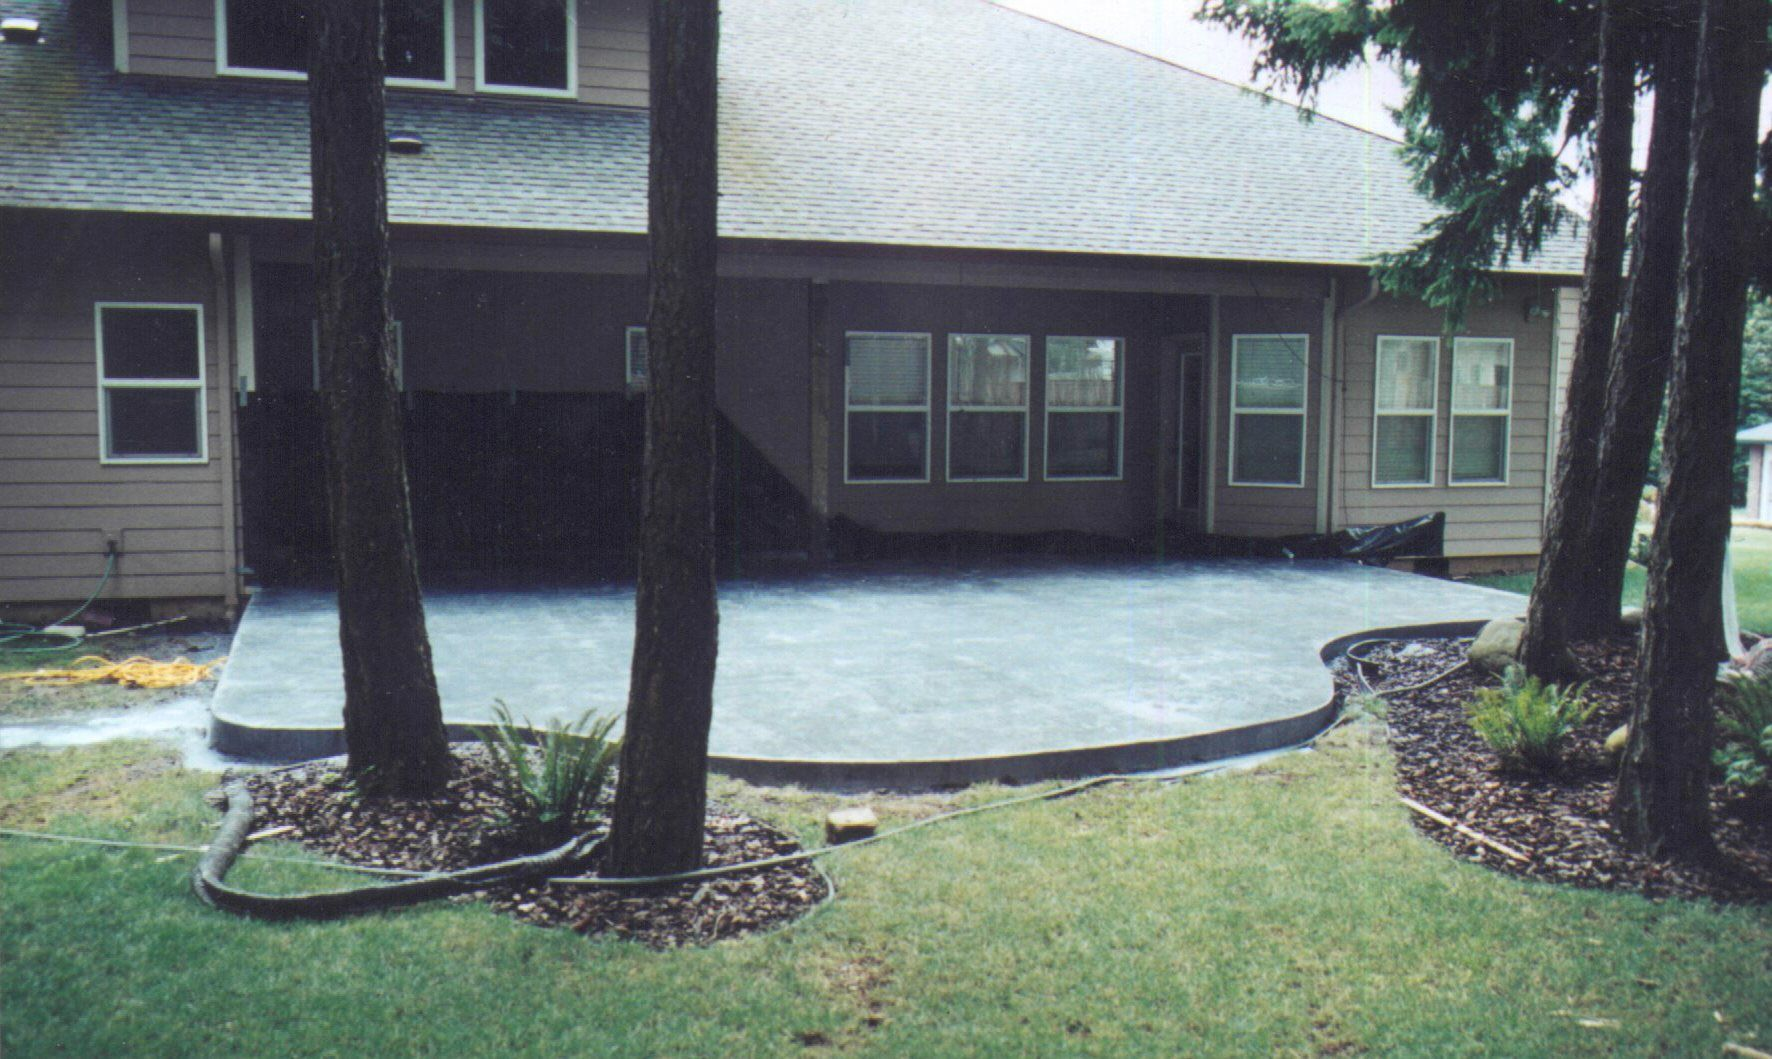 Concrete Patio Design Ideas new concrete patio ideas google search Concretepatiodesigns Concrete Patio Ideas Custom Patios Staining Concrete Patio Patio